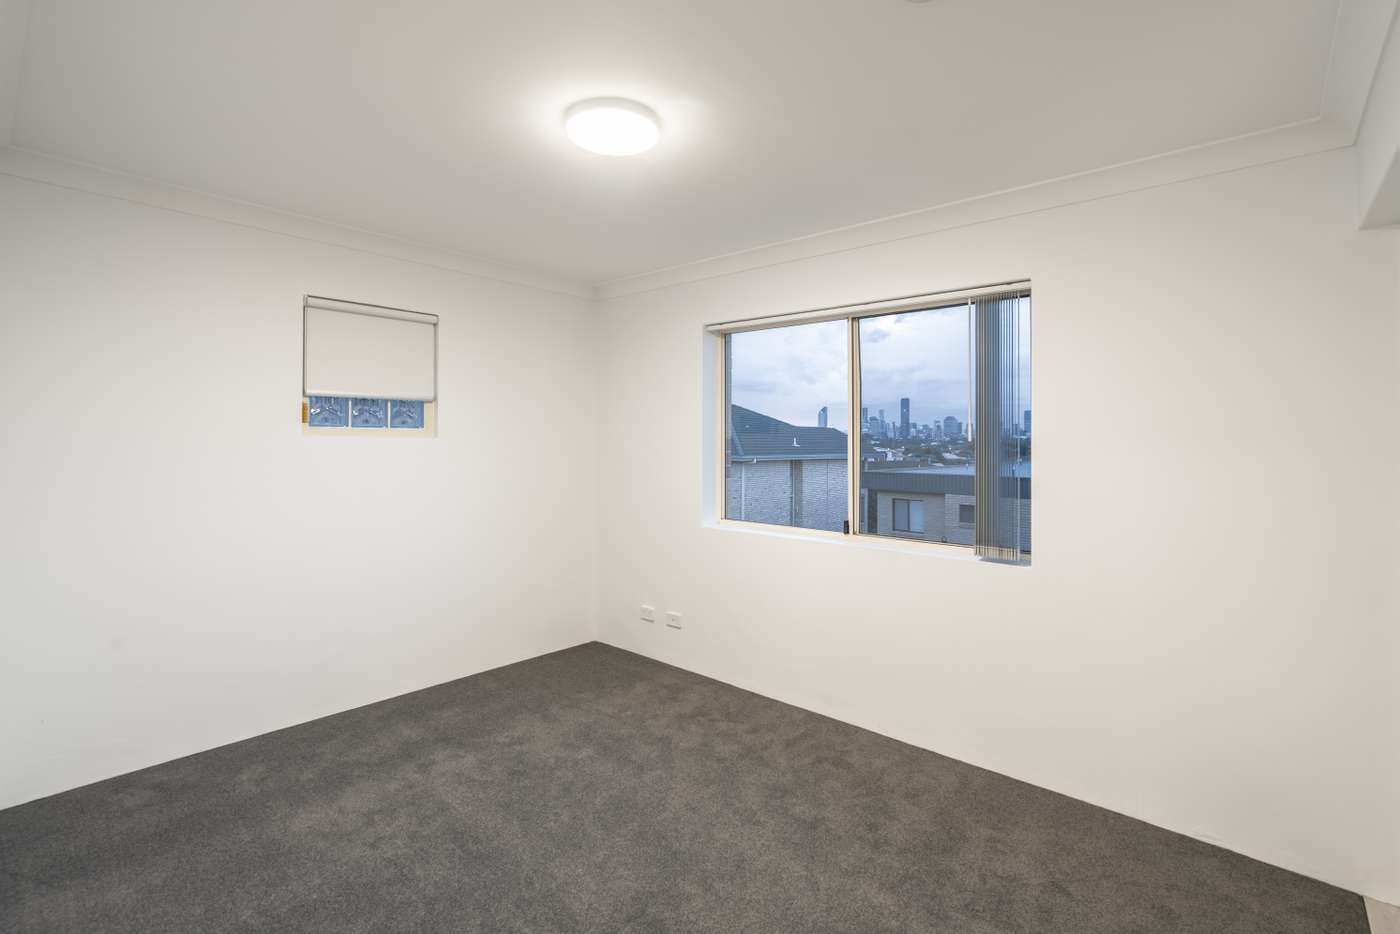 Sixth view of Homely unit listing, 2/48 Kitchener Street, Coorparoo QLD 4151